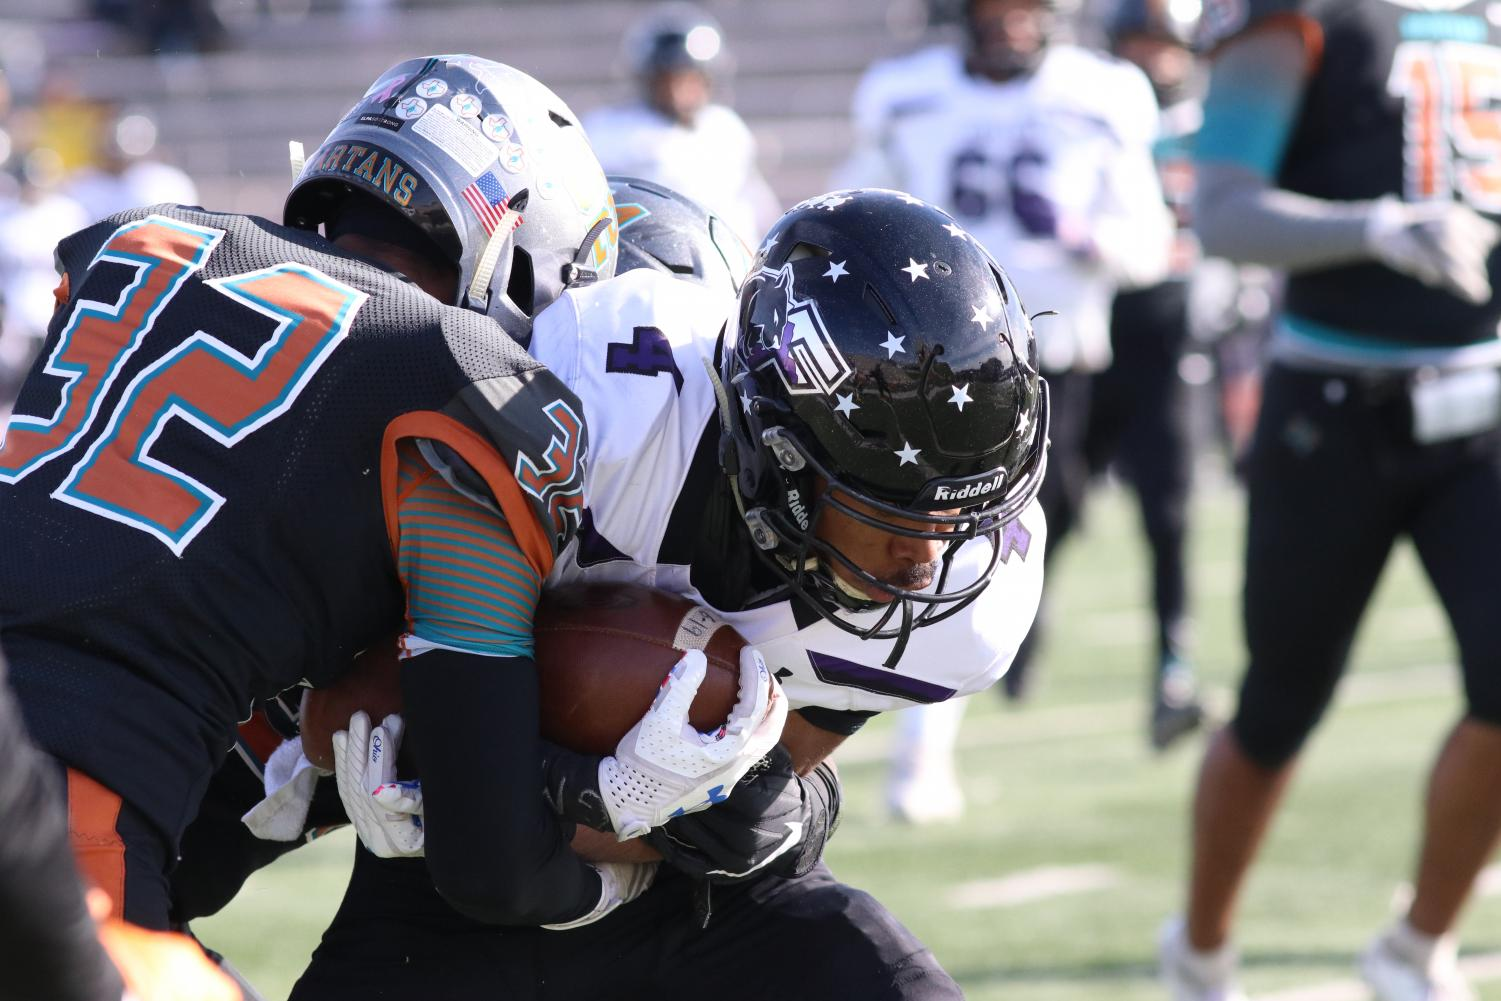 Senior Chaz Clemons tackles Franklin receiver in the first half Saturday morning, Nov 2 at the SISD Student Activities Center.